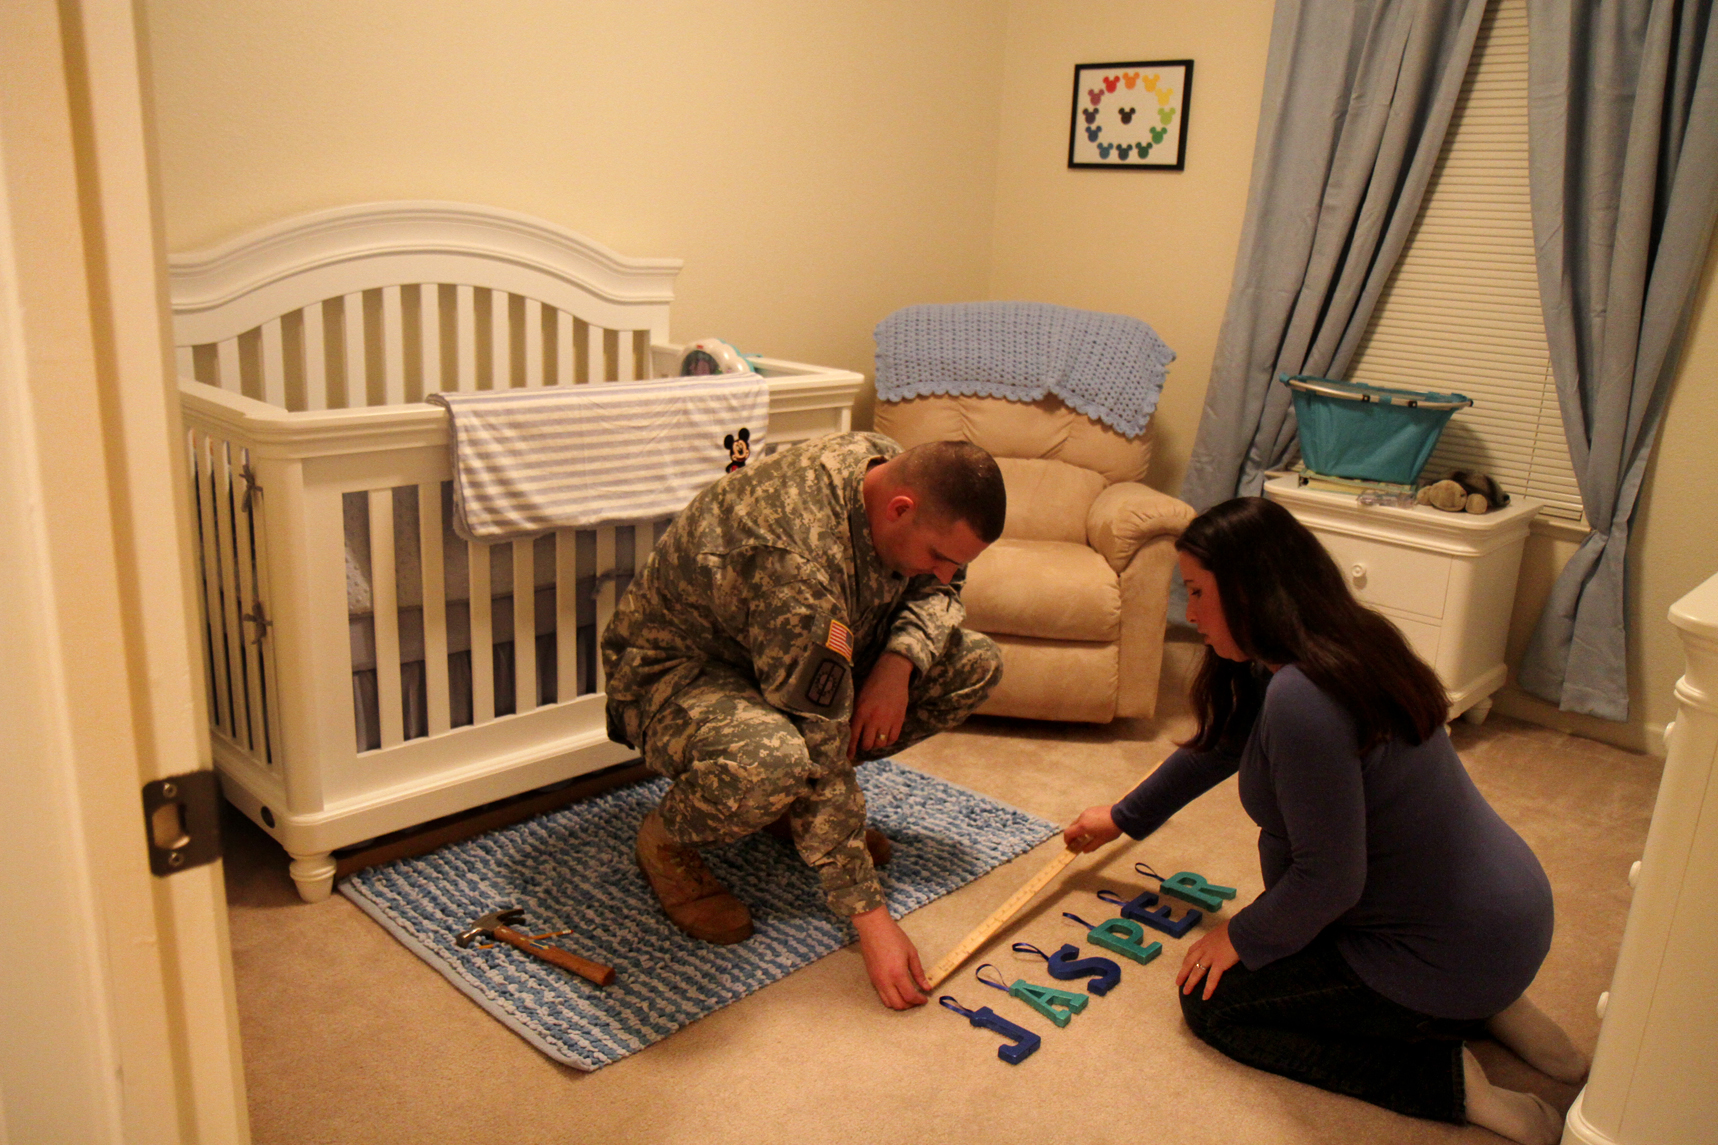 Jason and his pregnant wife Shelby prepare their baby's room, while living on base. TCE was found in sections of base housing. Exposure during pregnancy can lead to birth defects.